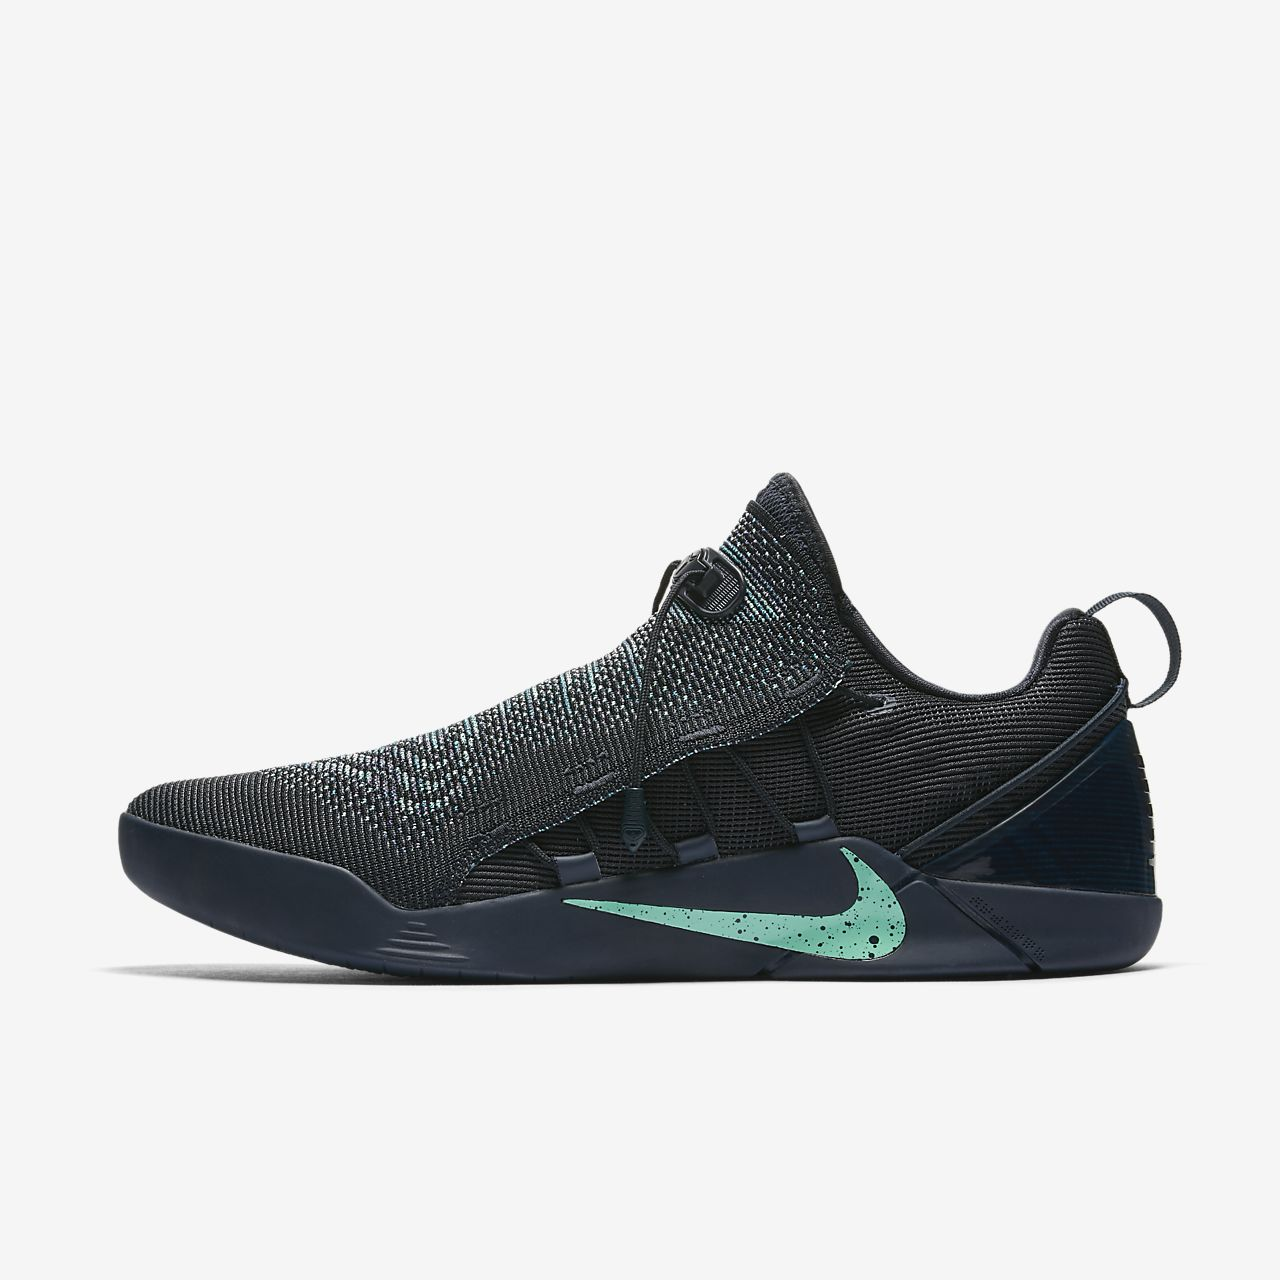 men s nike kobe a d nxt releases breaking ground dance competition